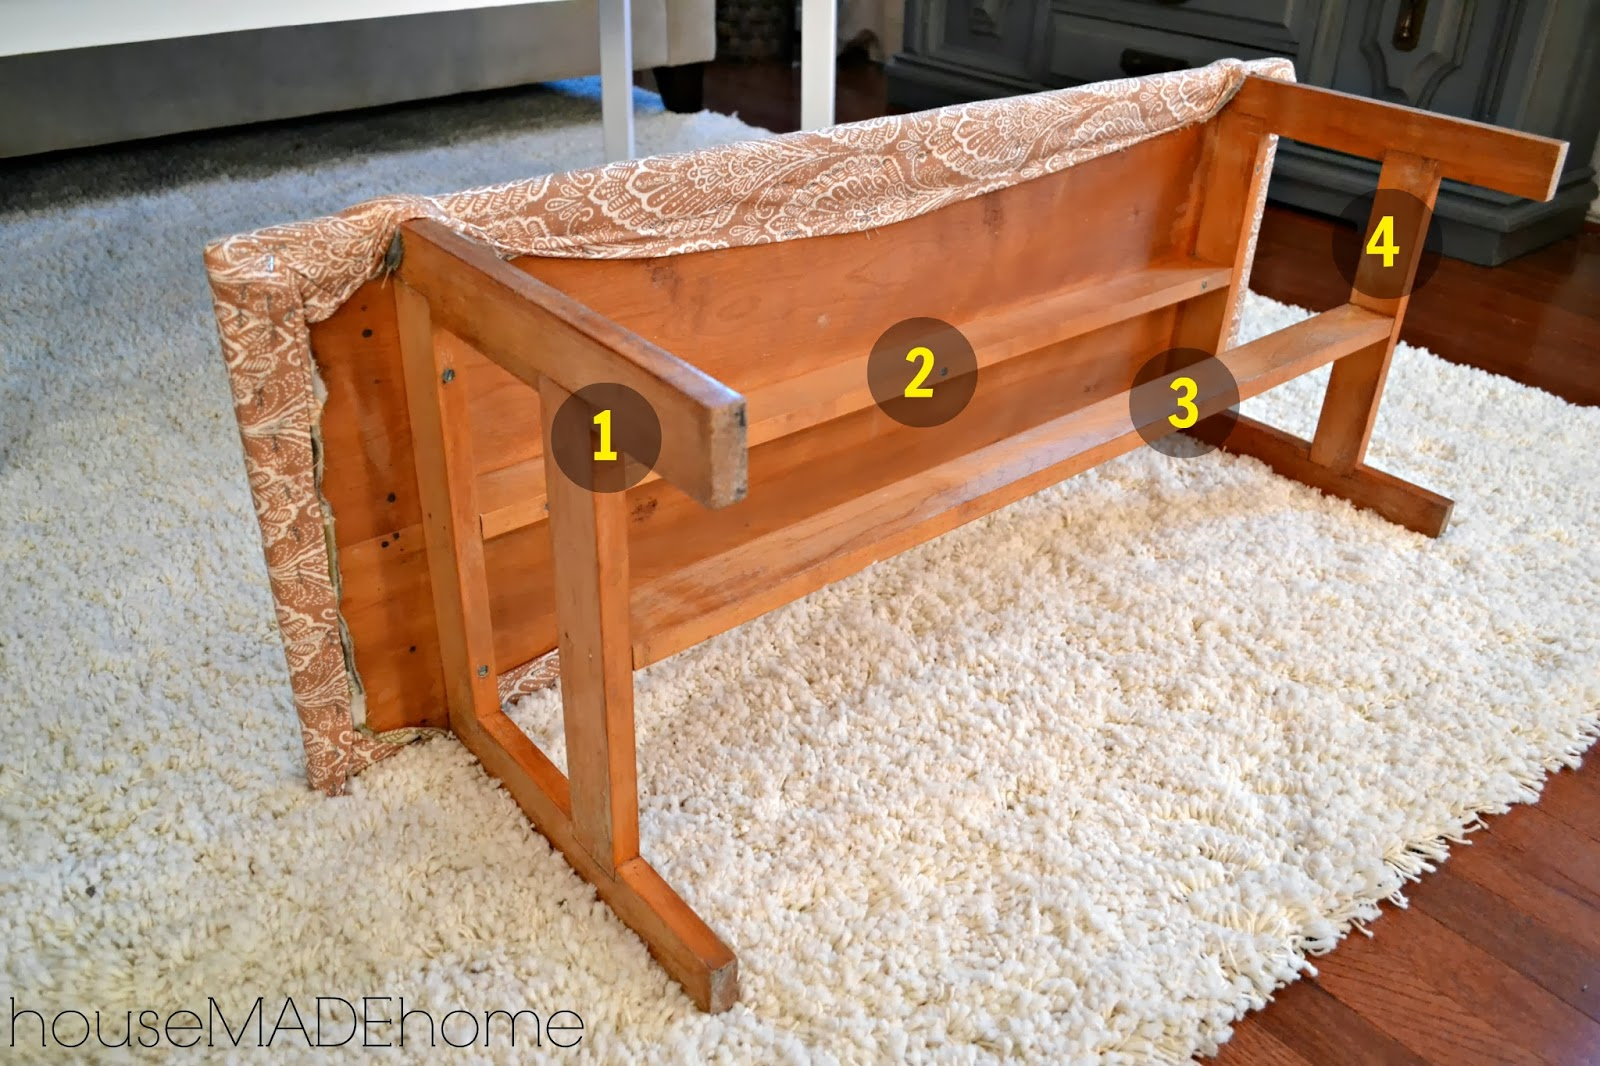 Hmh designs diy dog gate from a bench a tutorial Bench dog